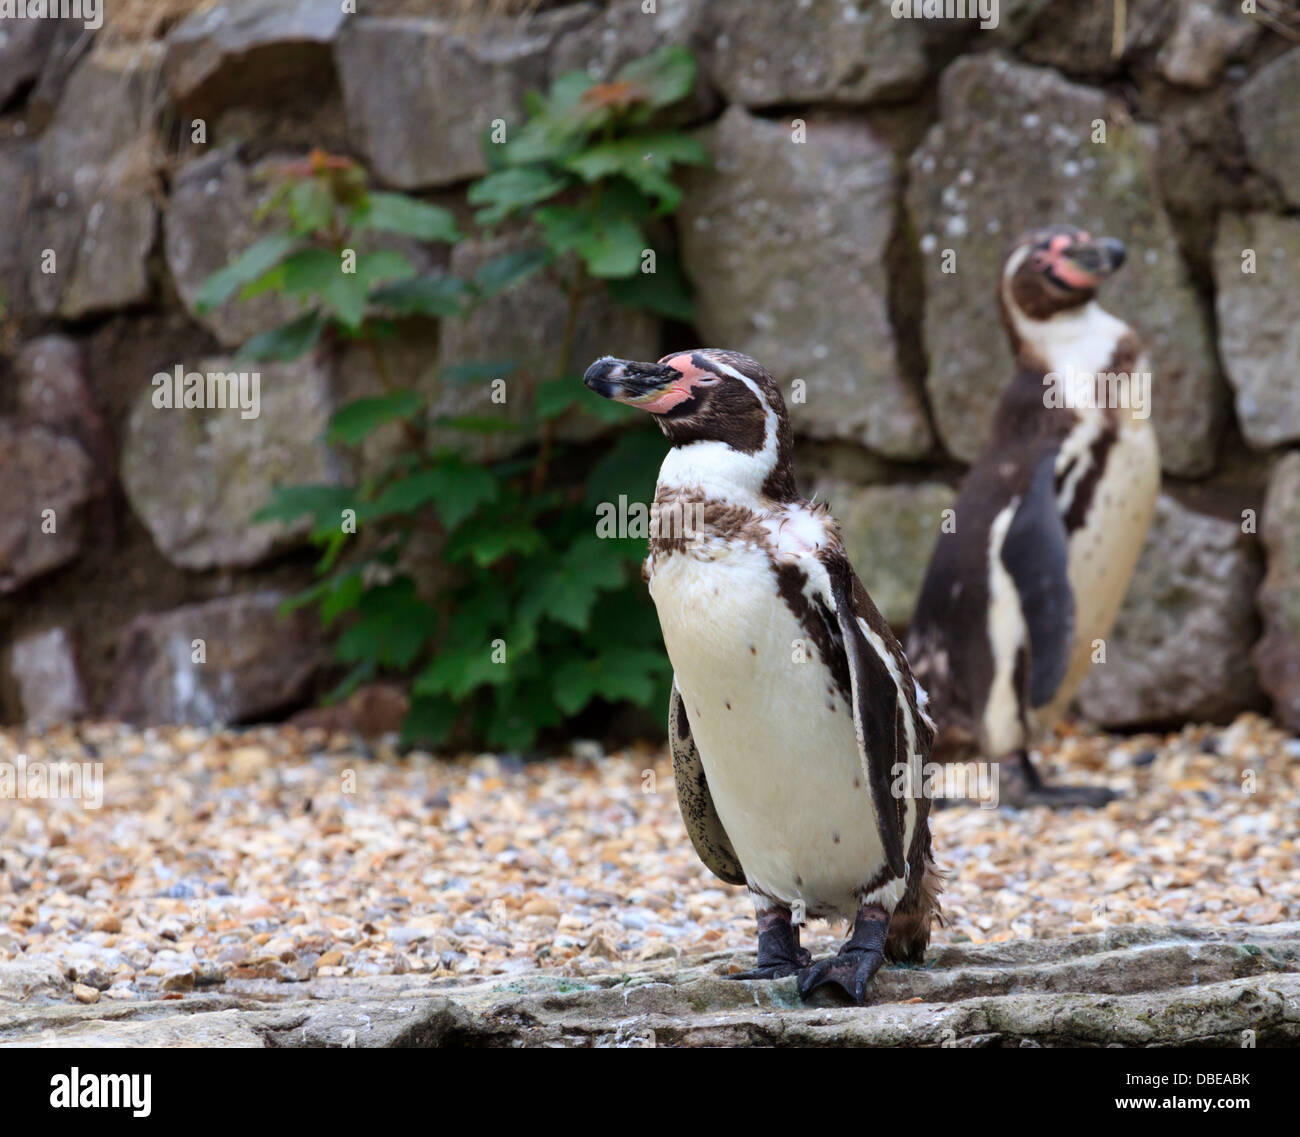 Penguins at Chester Zoo - Stock Image